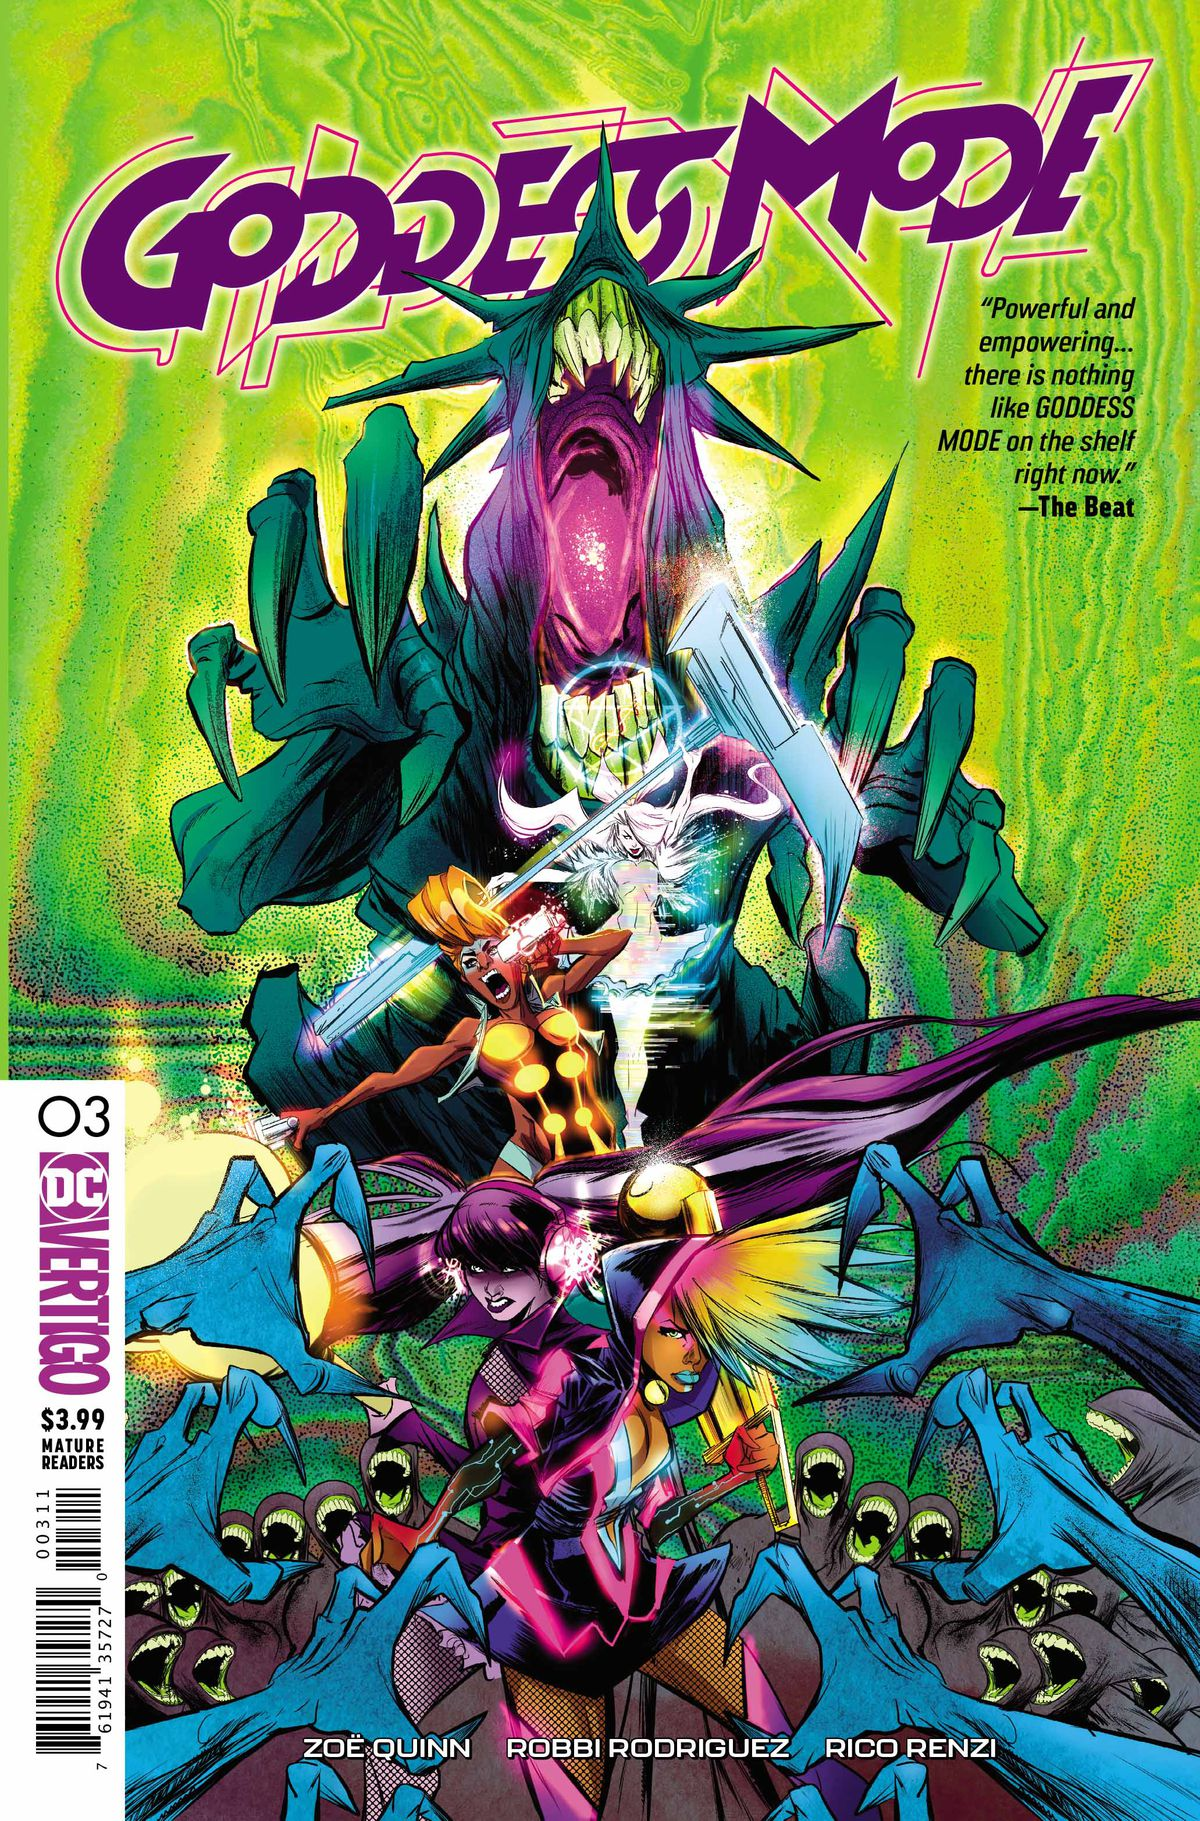 The cover of Goddess Mode #3, DC Vertigo (2019).